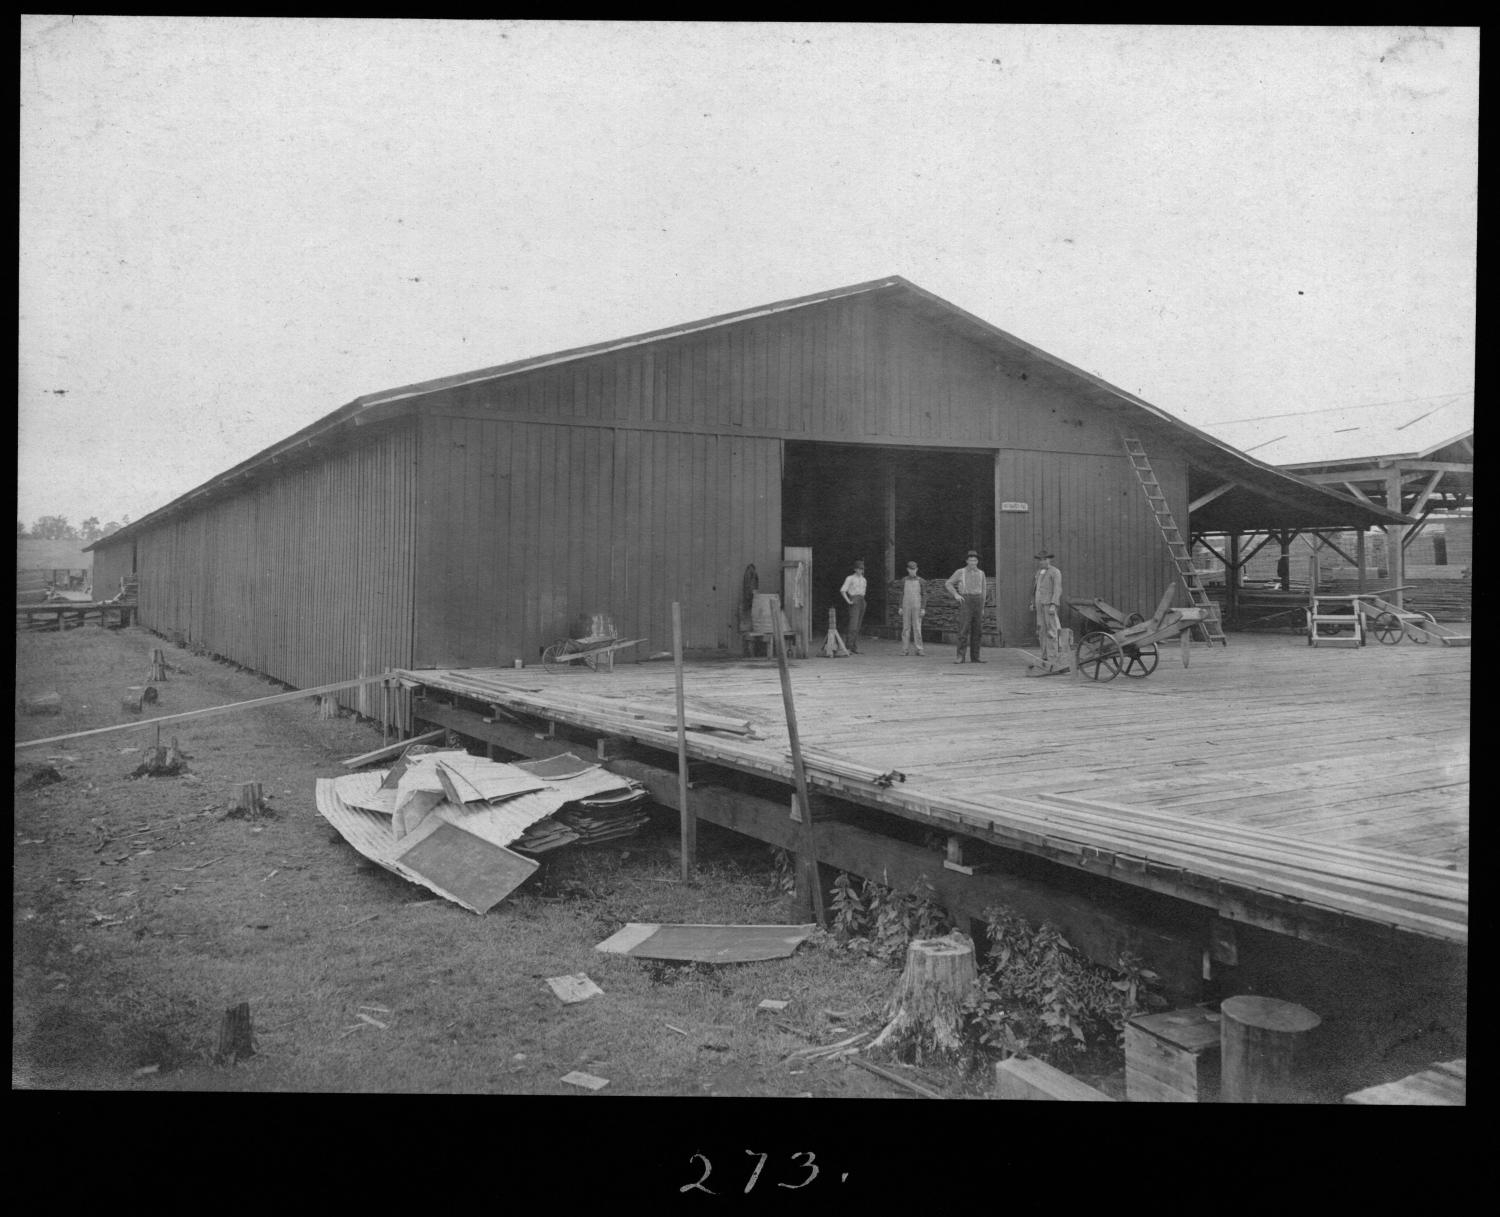 S. P. 273 Rough Dry Lumber Shed